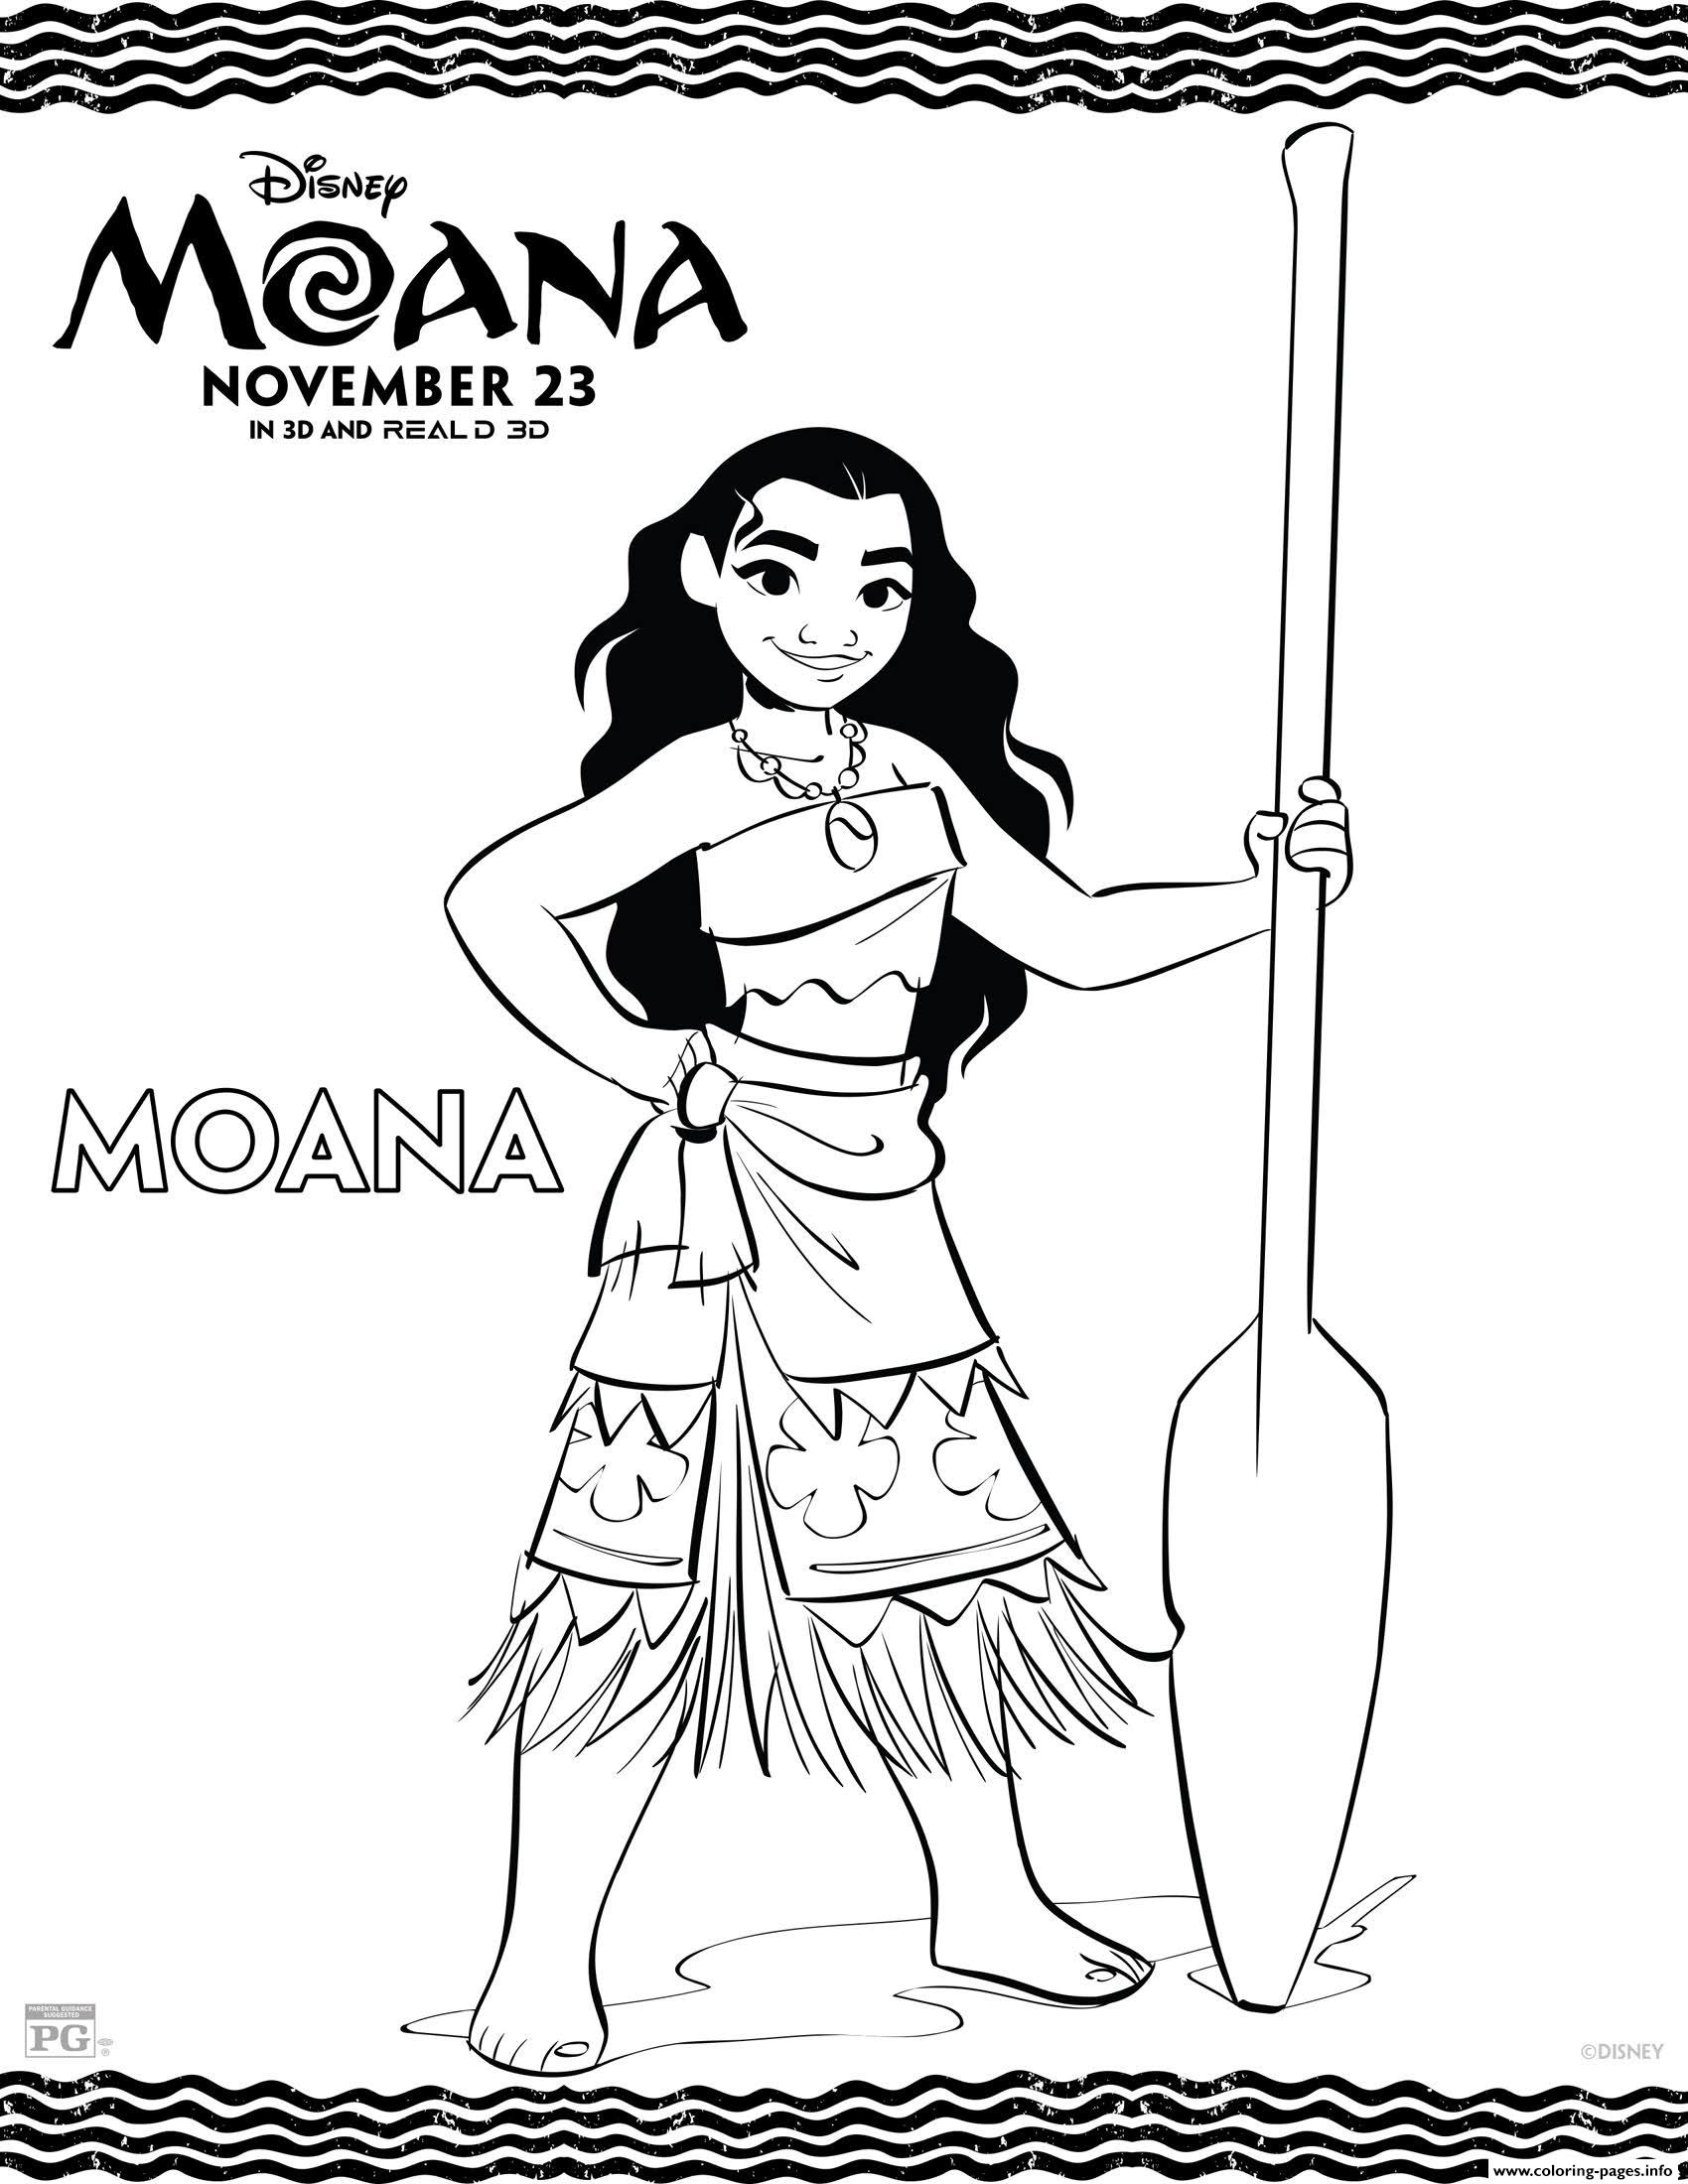 Disneys Moana Princess coloring pages